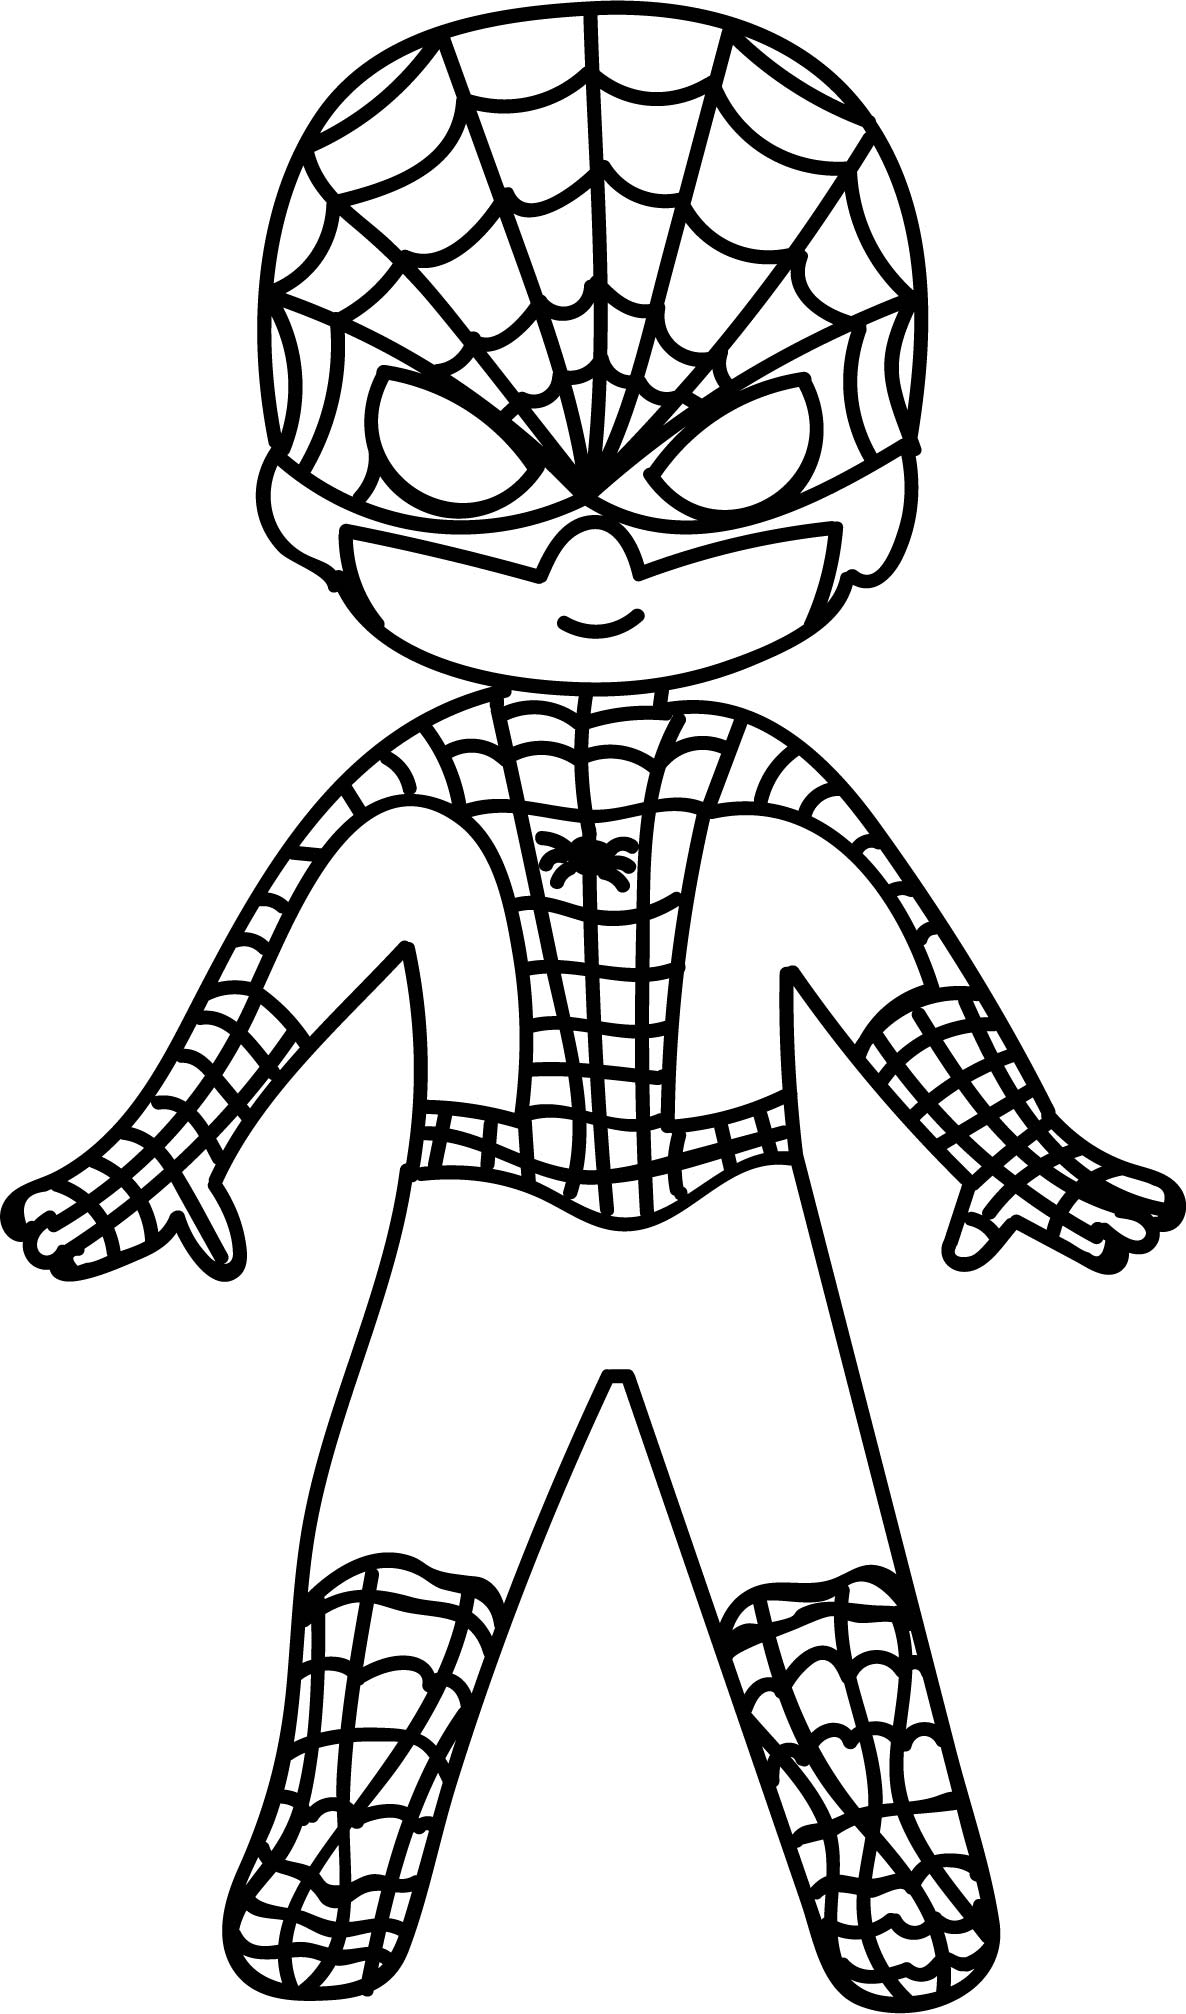 Waiting Cartoon Superhero Spiderman